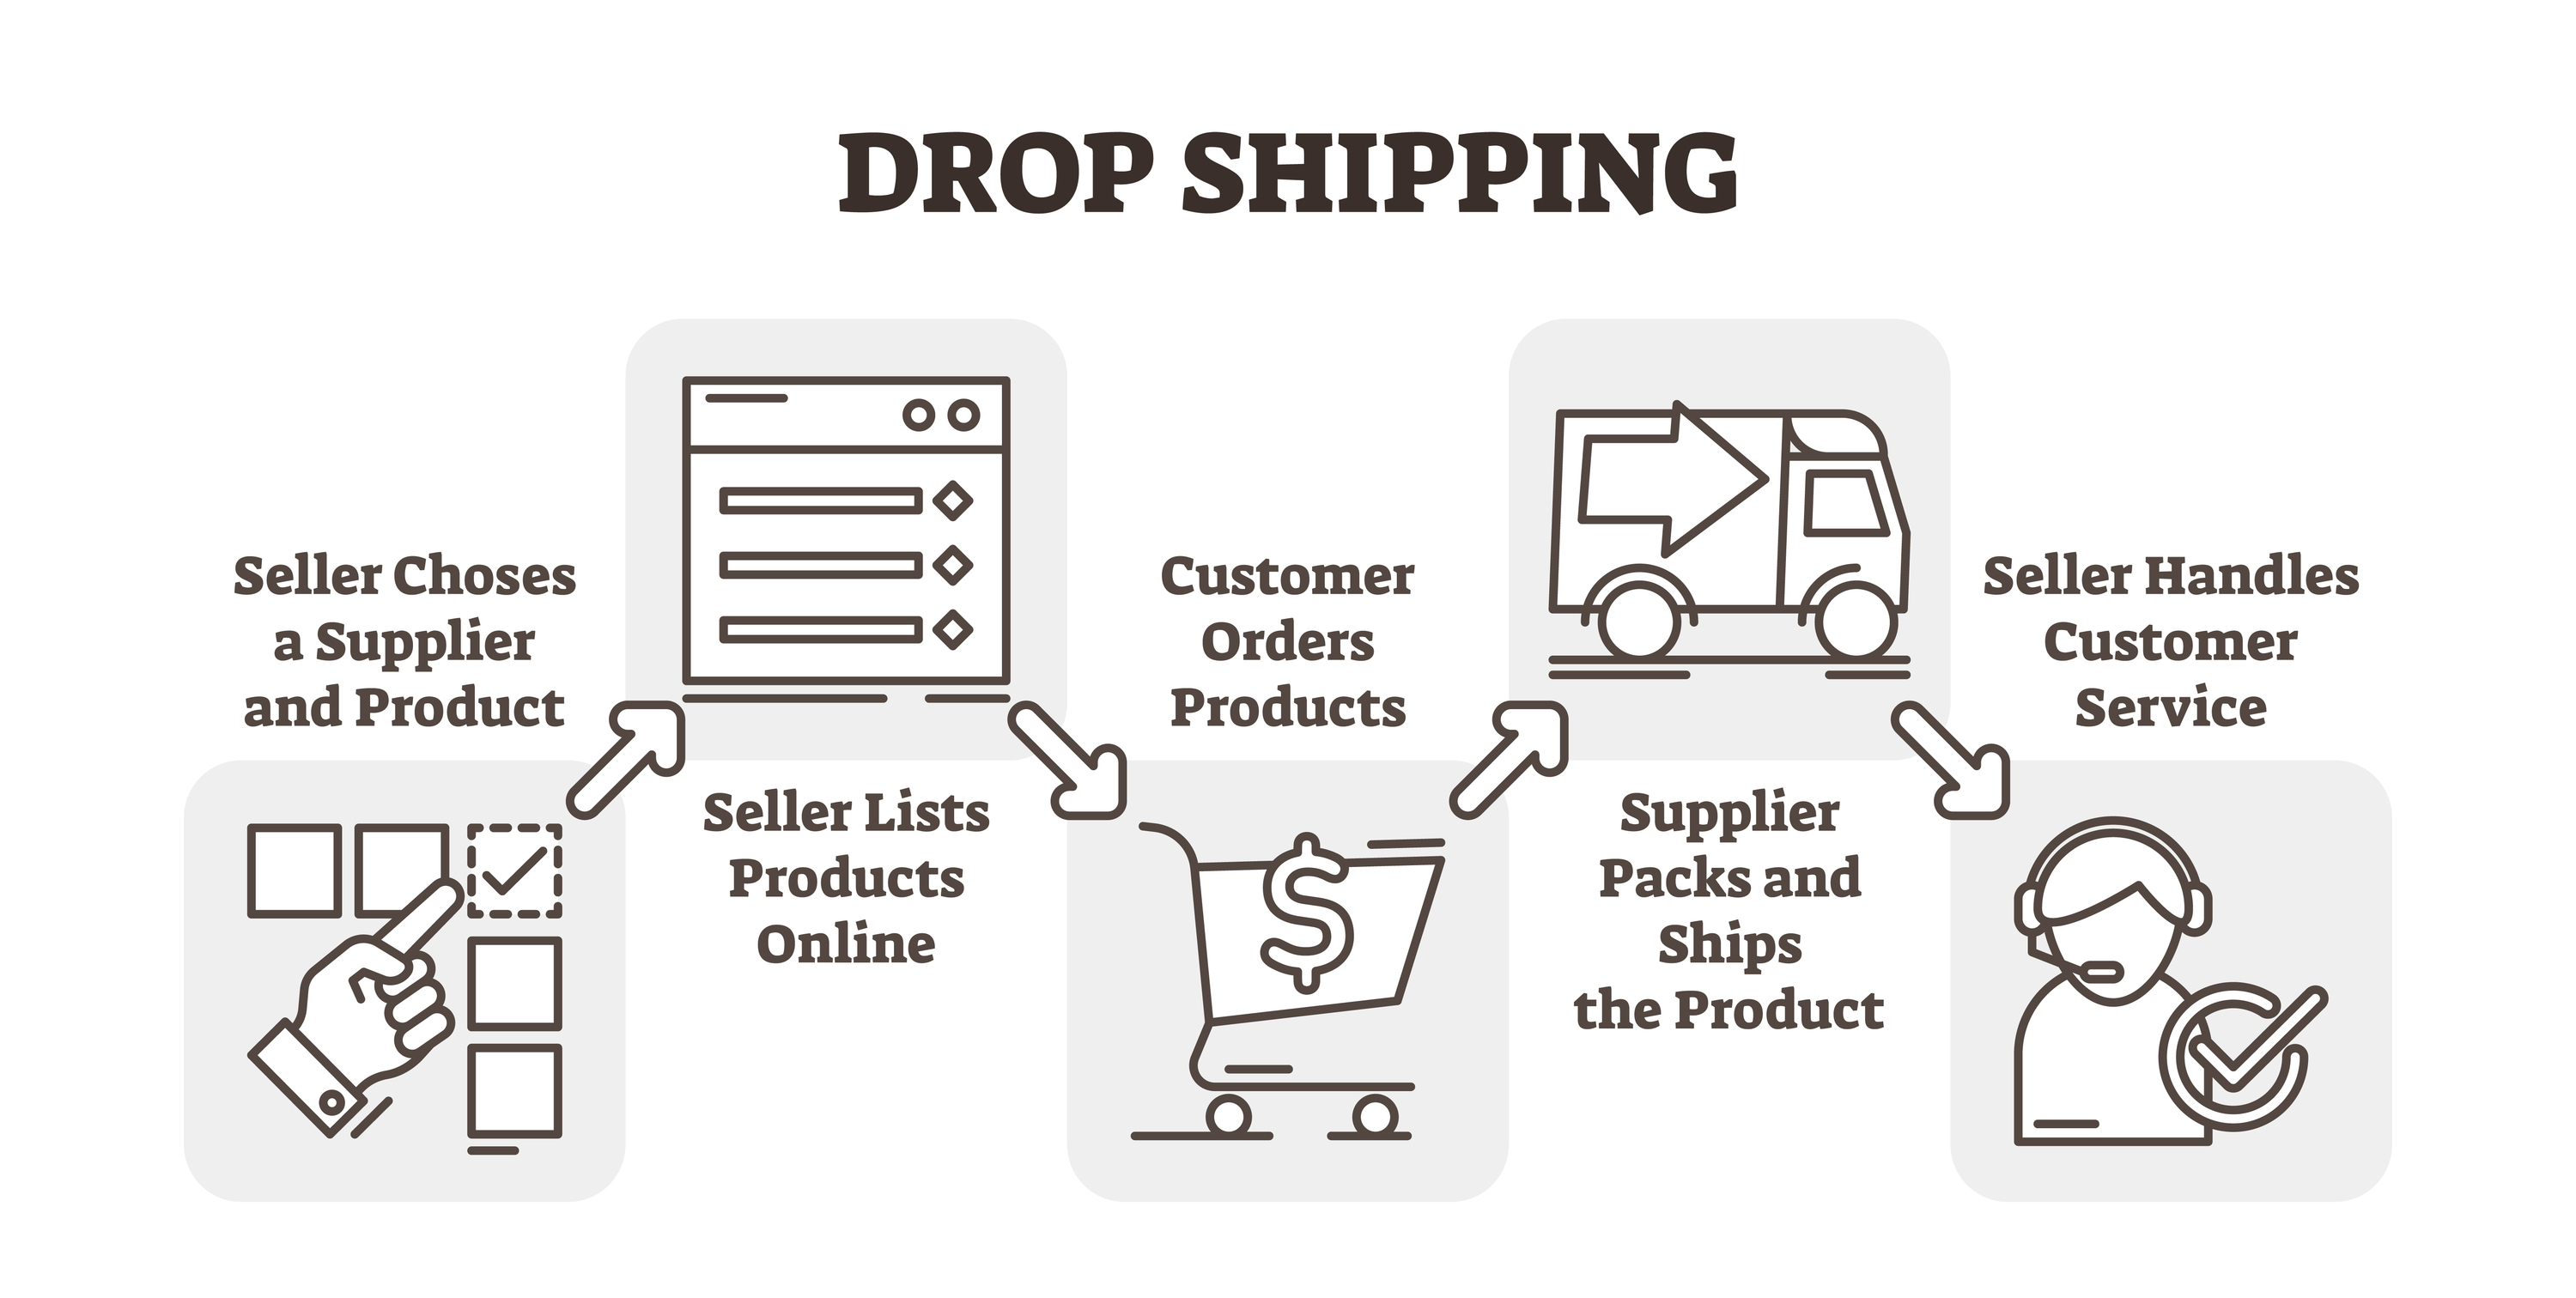 WHAT ARE THE ADVANTAGES AND DISADVANTAGES OF DROP SHIPPING? 4